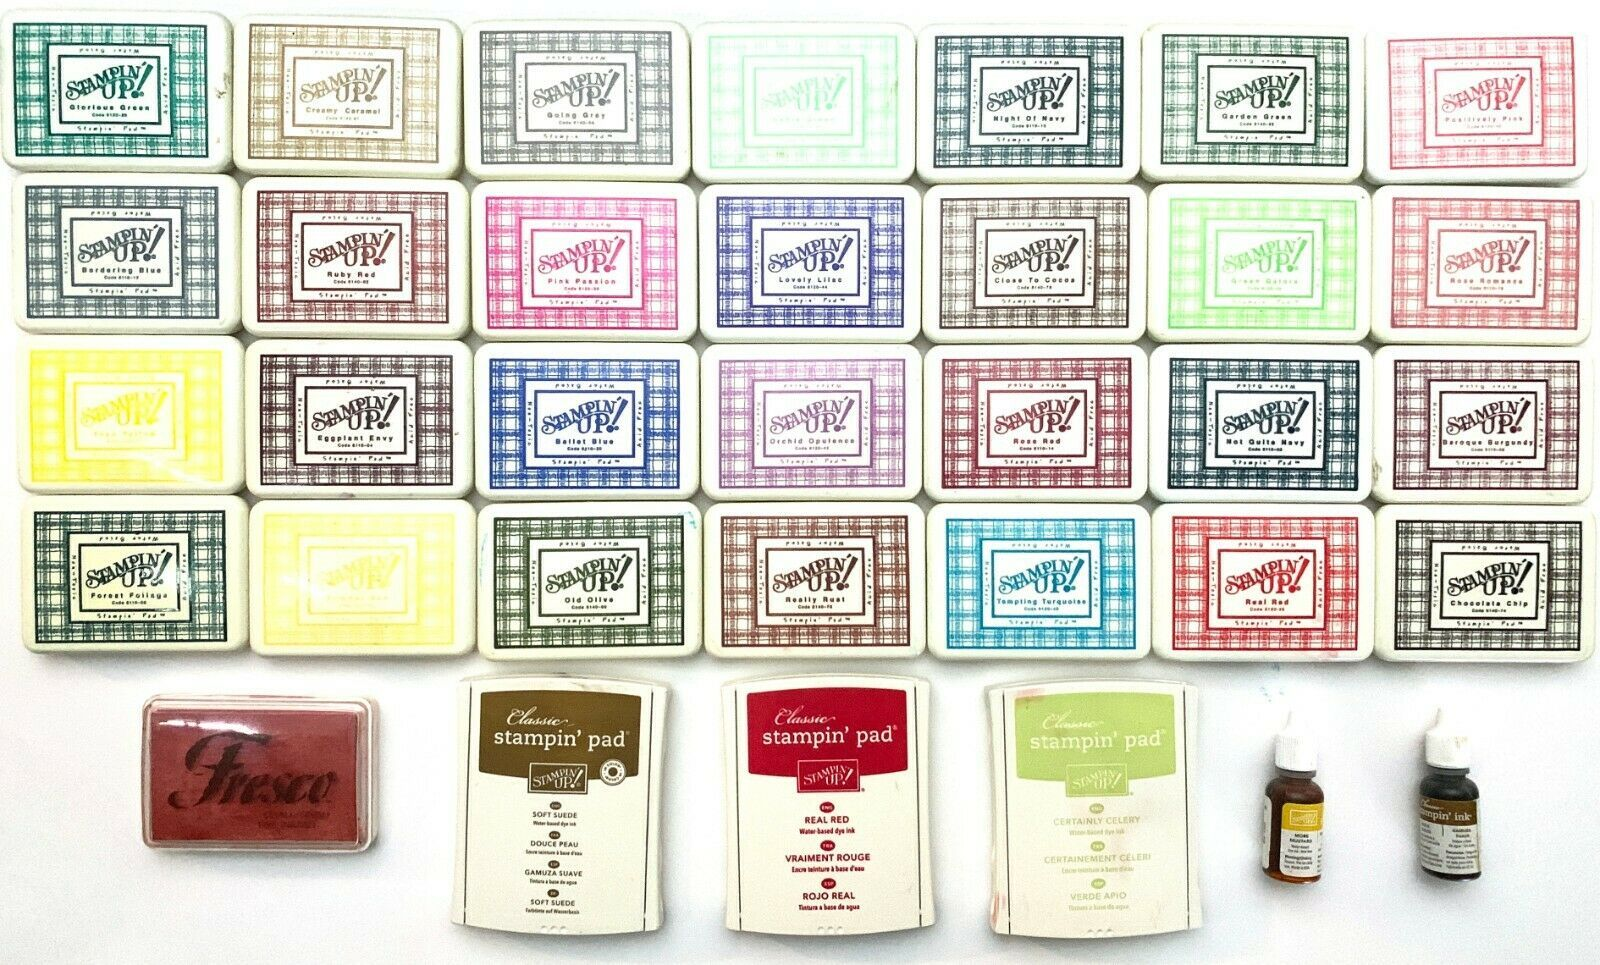 Lot of 31 Stampin' Up Ink Pads, One Fresco Ink Pad, Two Stampin' Up Ink Refills - $99.88